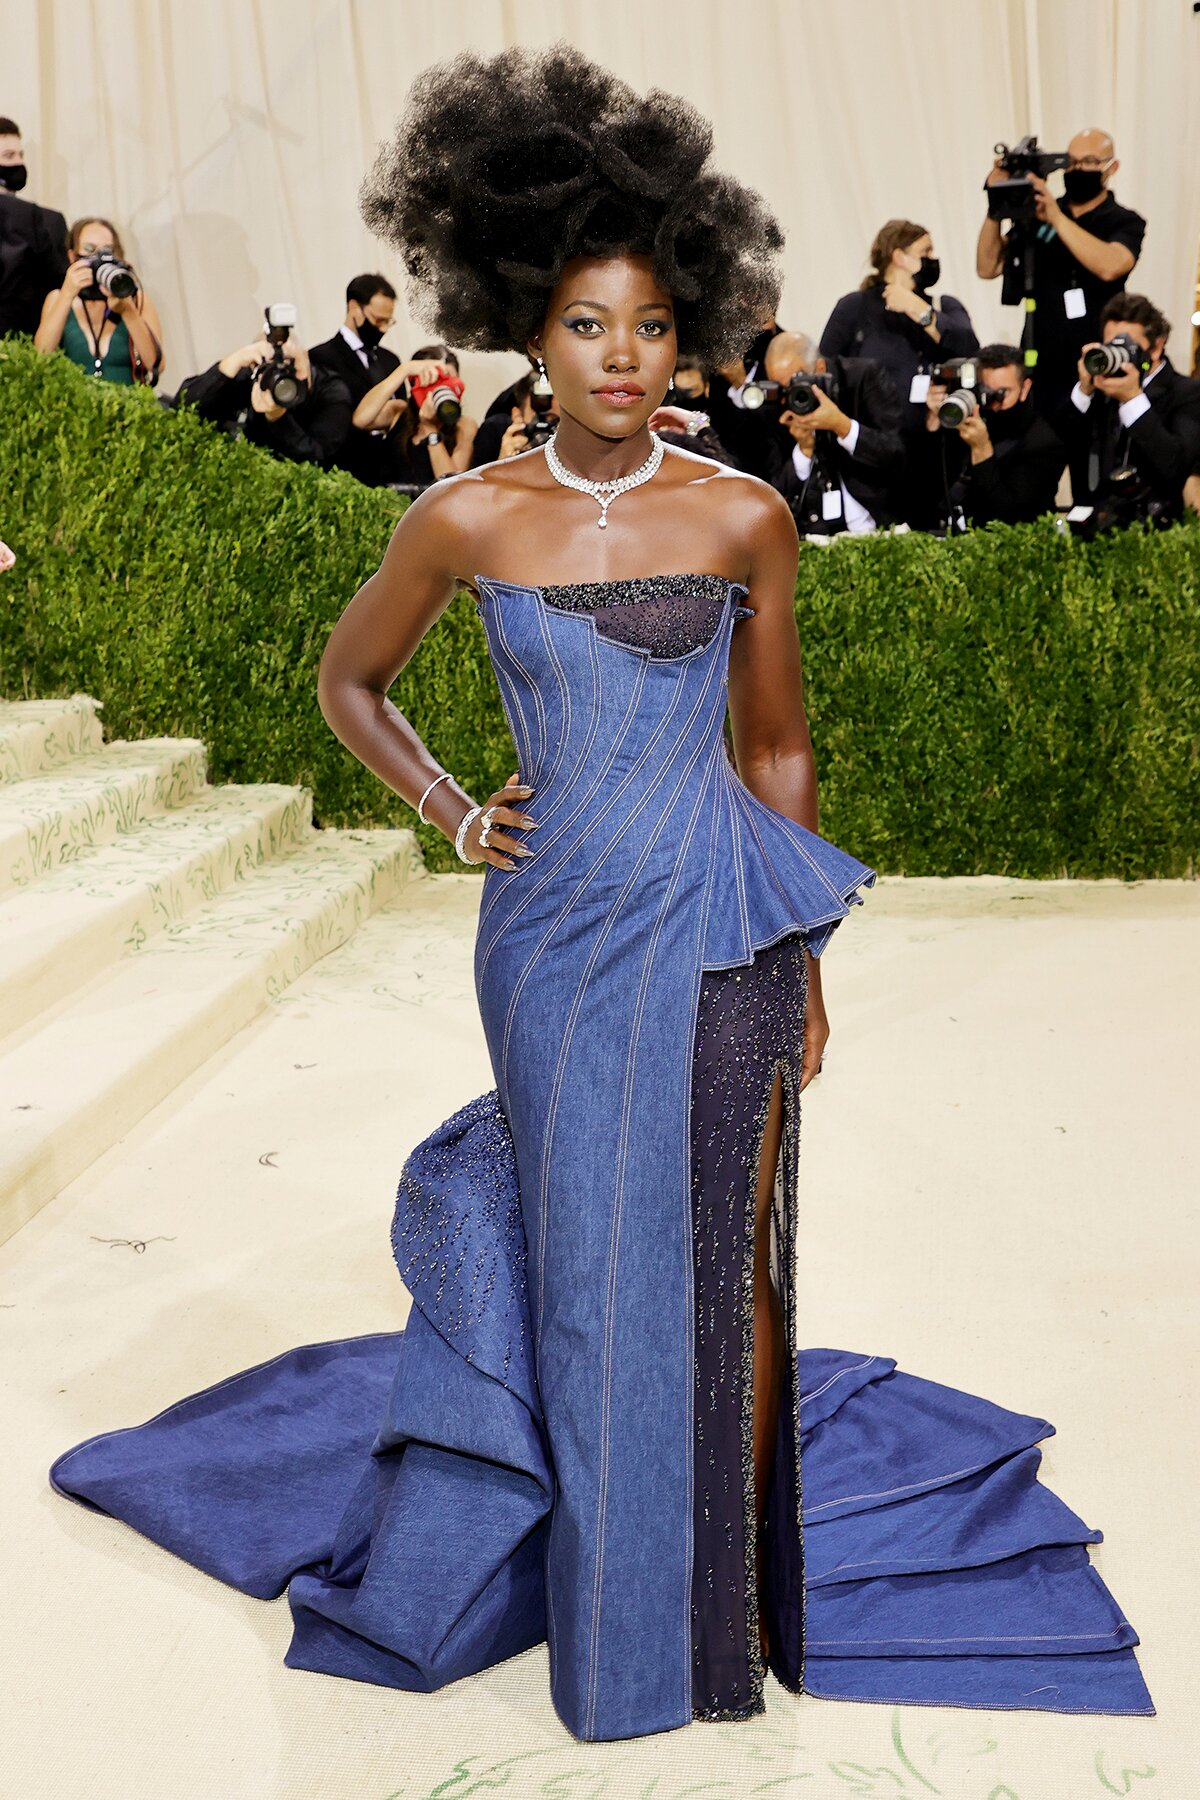 Lupita Nyong'o in Versace (Photo credit: Mike Coppola / Getty Images)